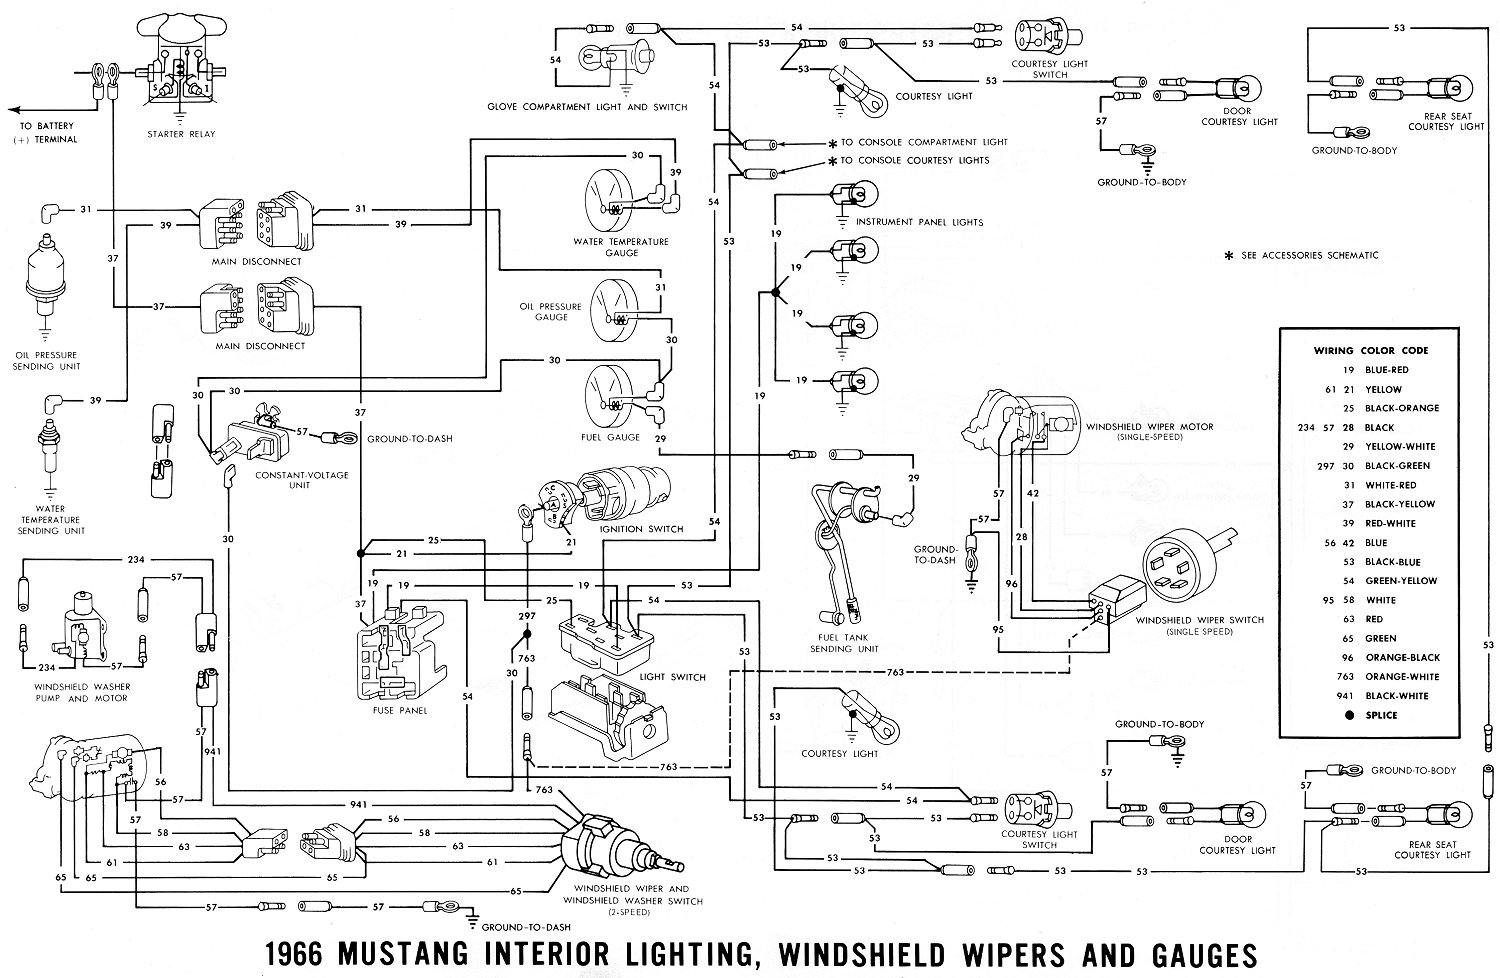 66inter1 1966 mustang wiring diagrams average joe restoration 1966 mustang headlight wiring diagram at n-0.co